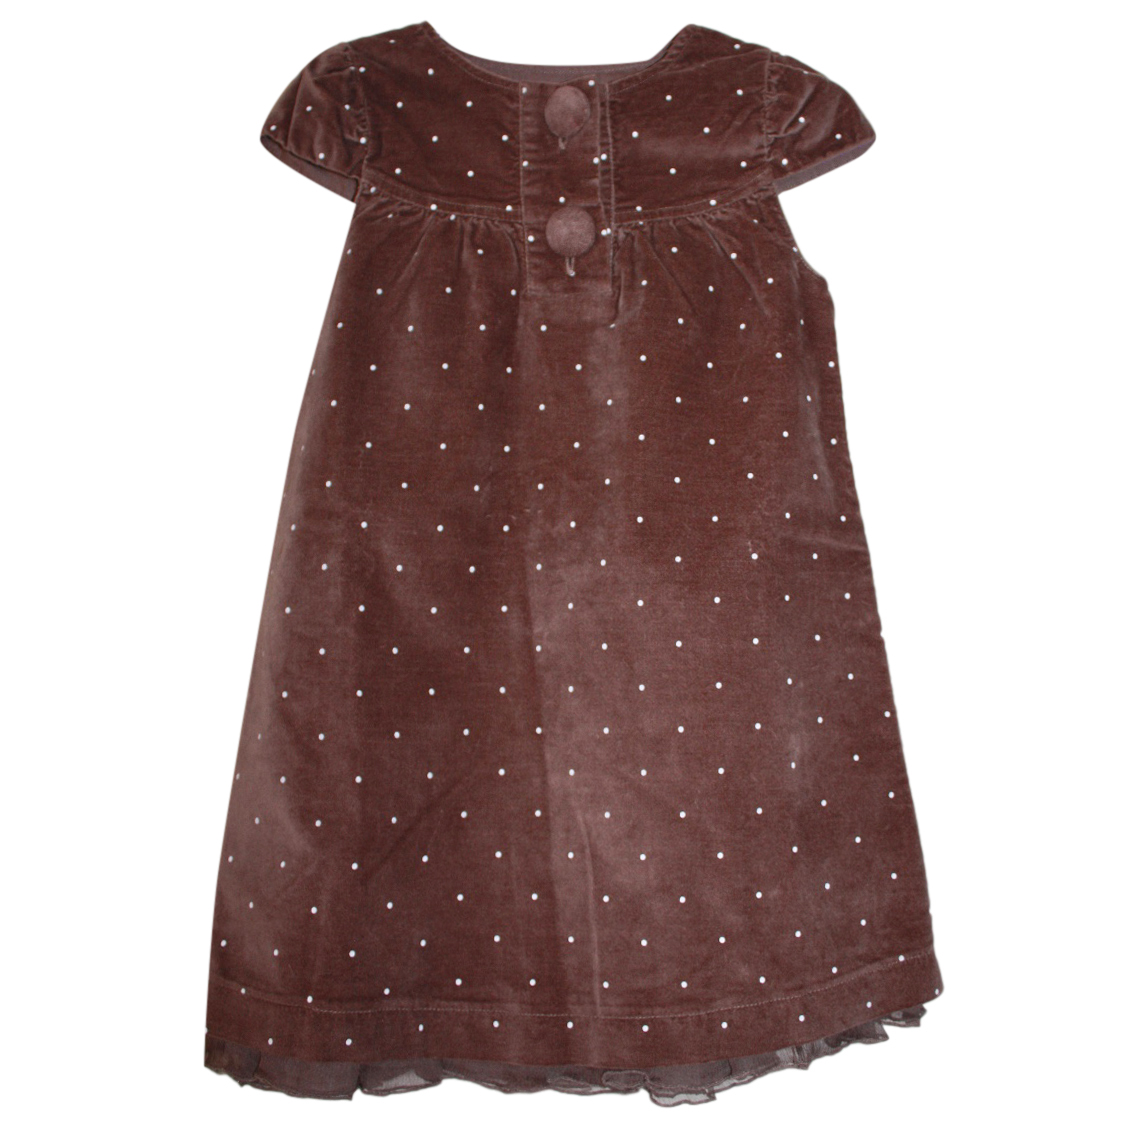 Lili Gaifrette Velour Polka Dot Dress